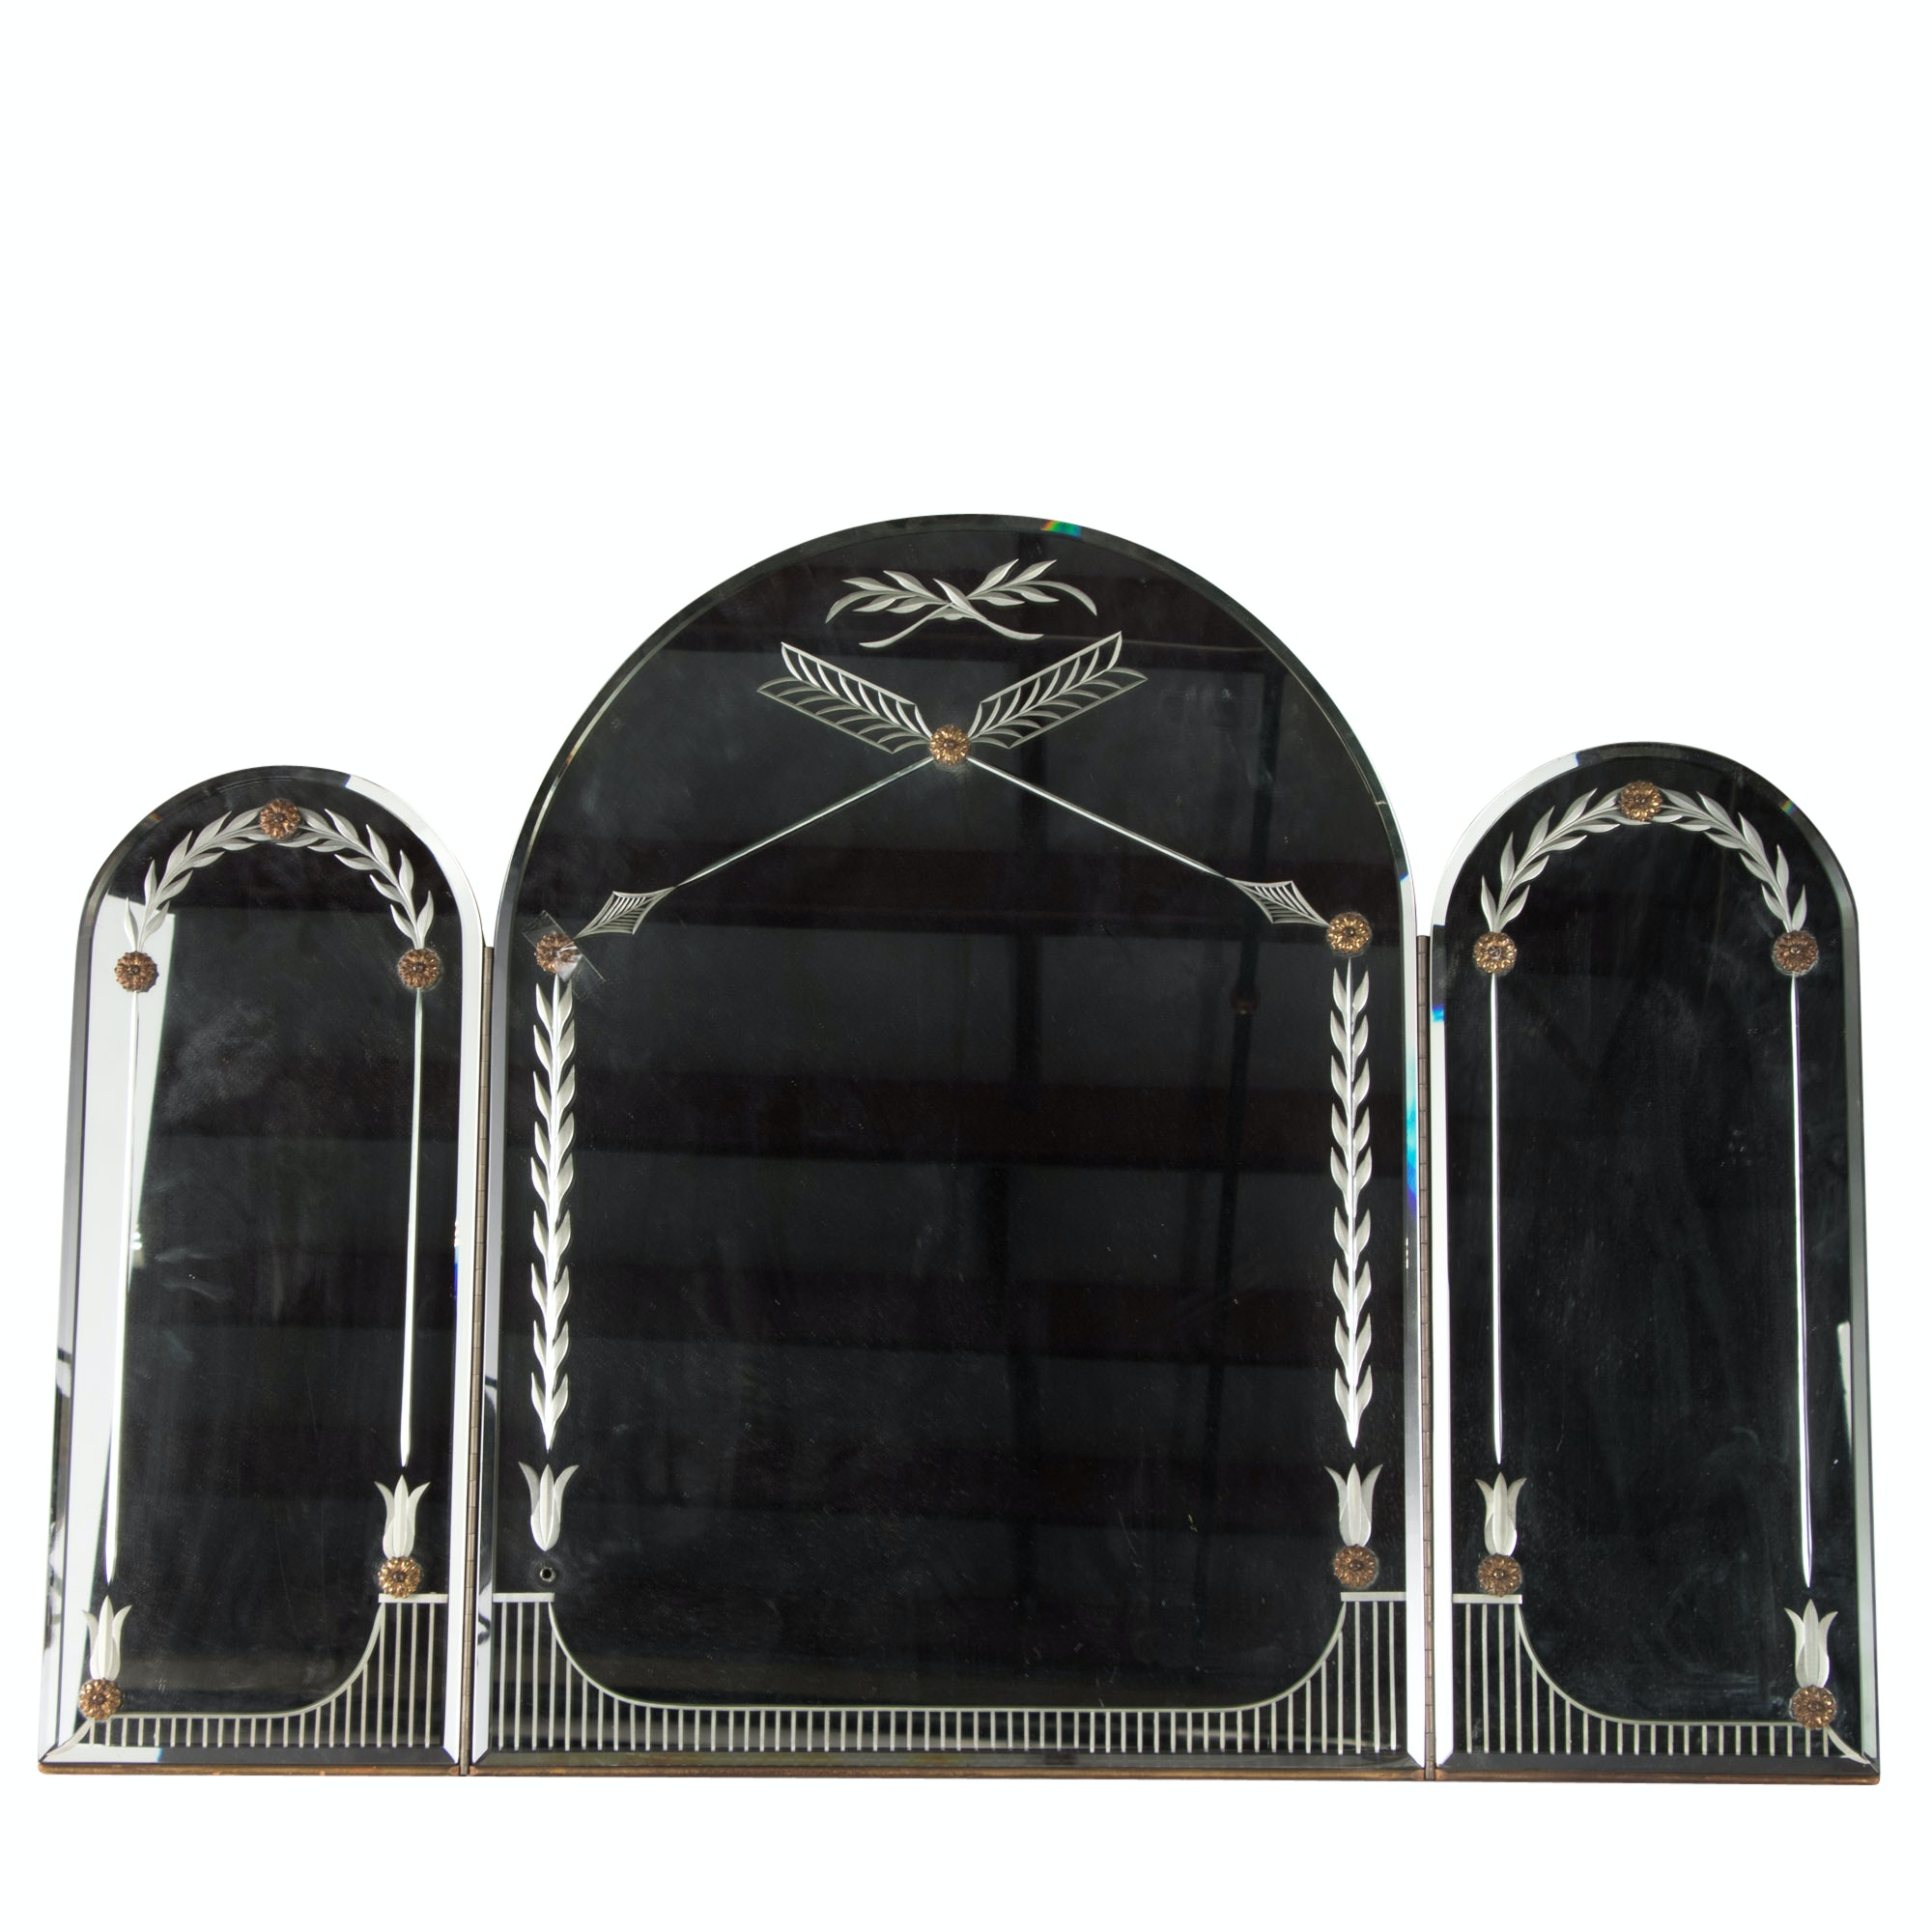 Art Deco Etched Glass Three Section Vanity Mirror, Circa 1940